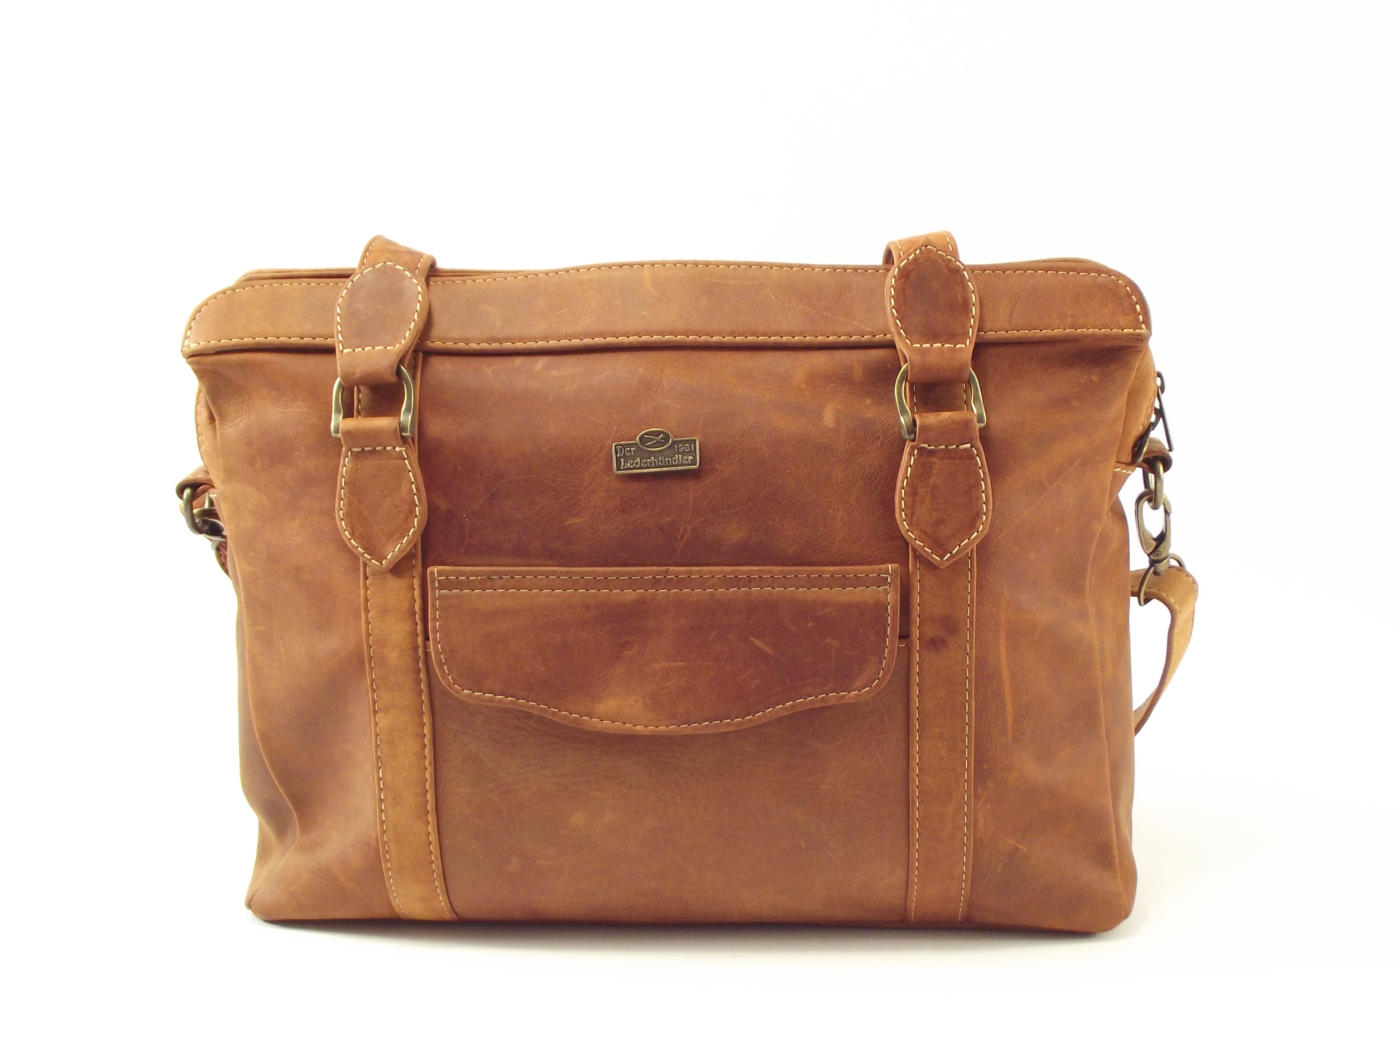 80fd08b17b Town Sling Three HP7271 - women leather laptop bag by Der Lederhandler